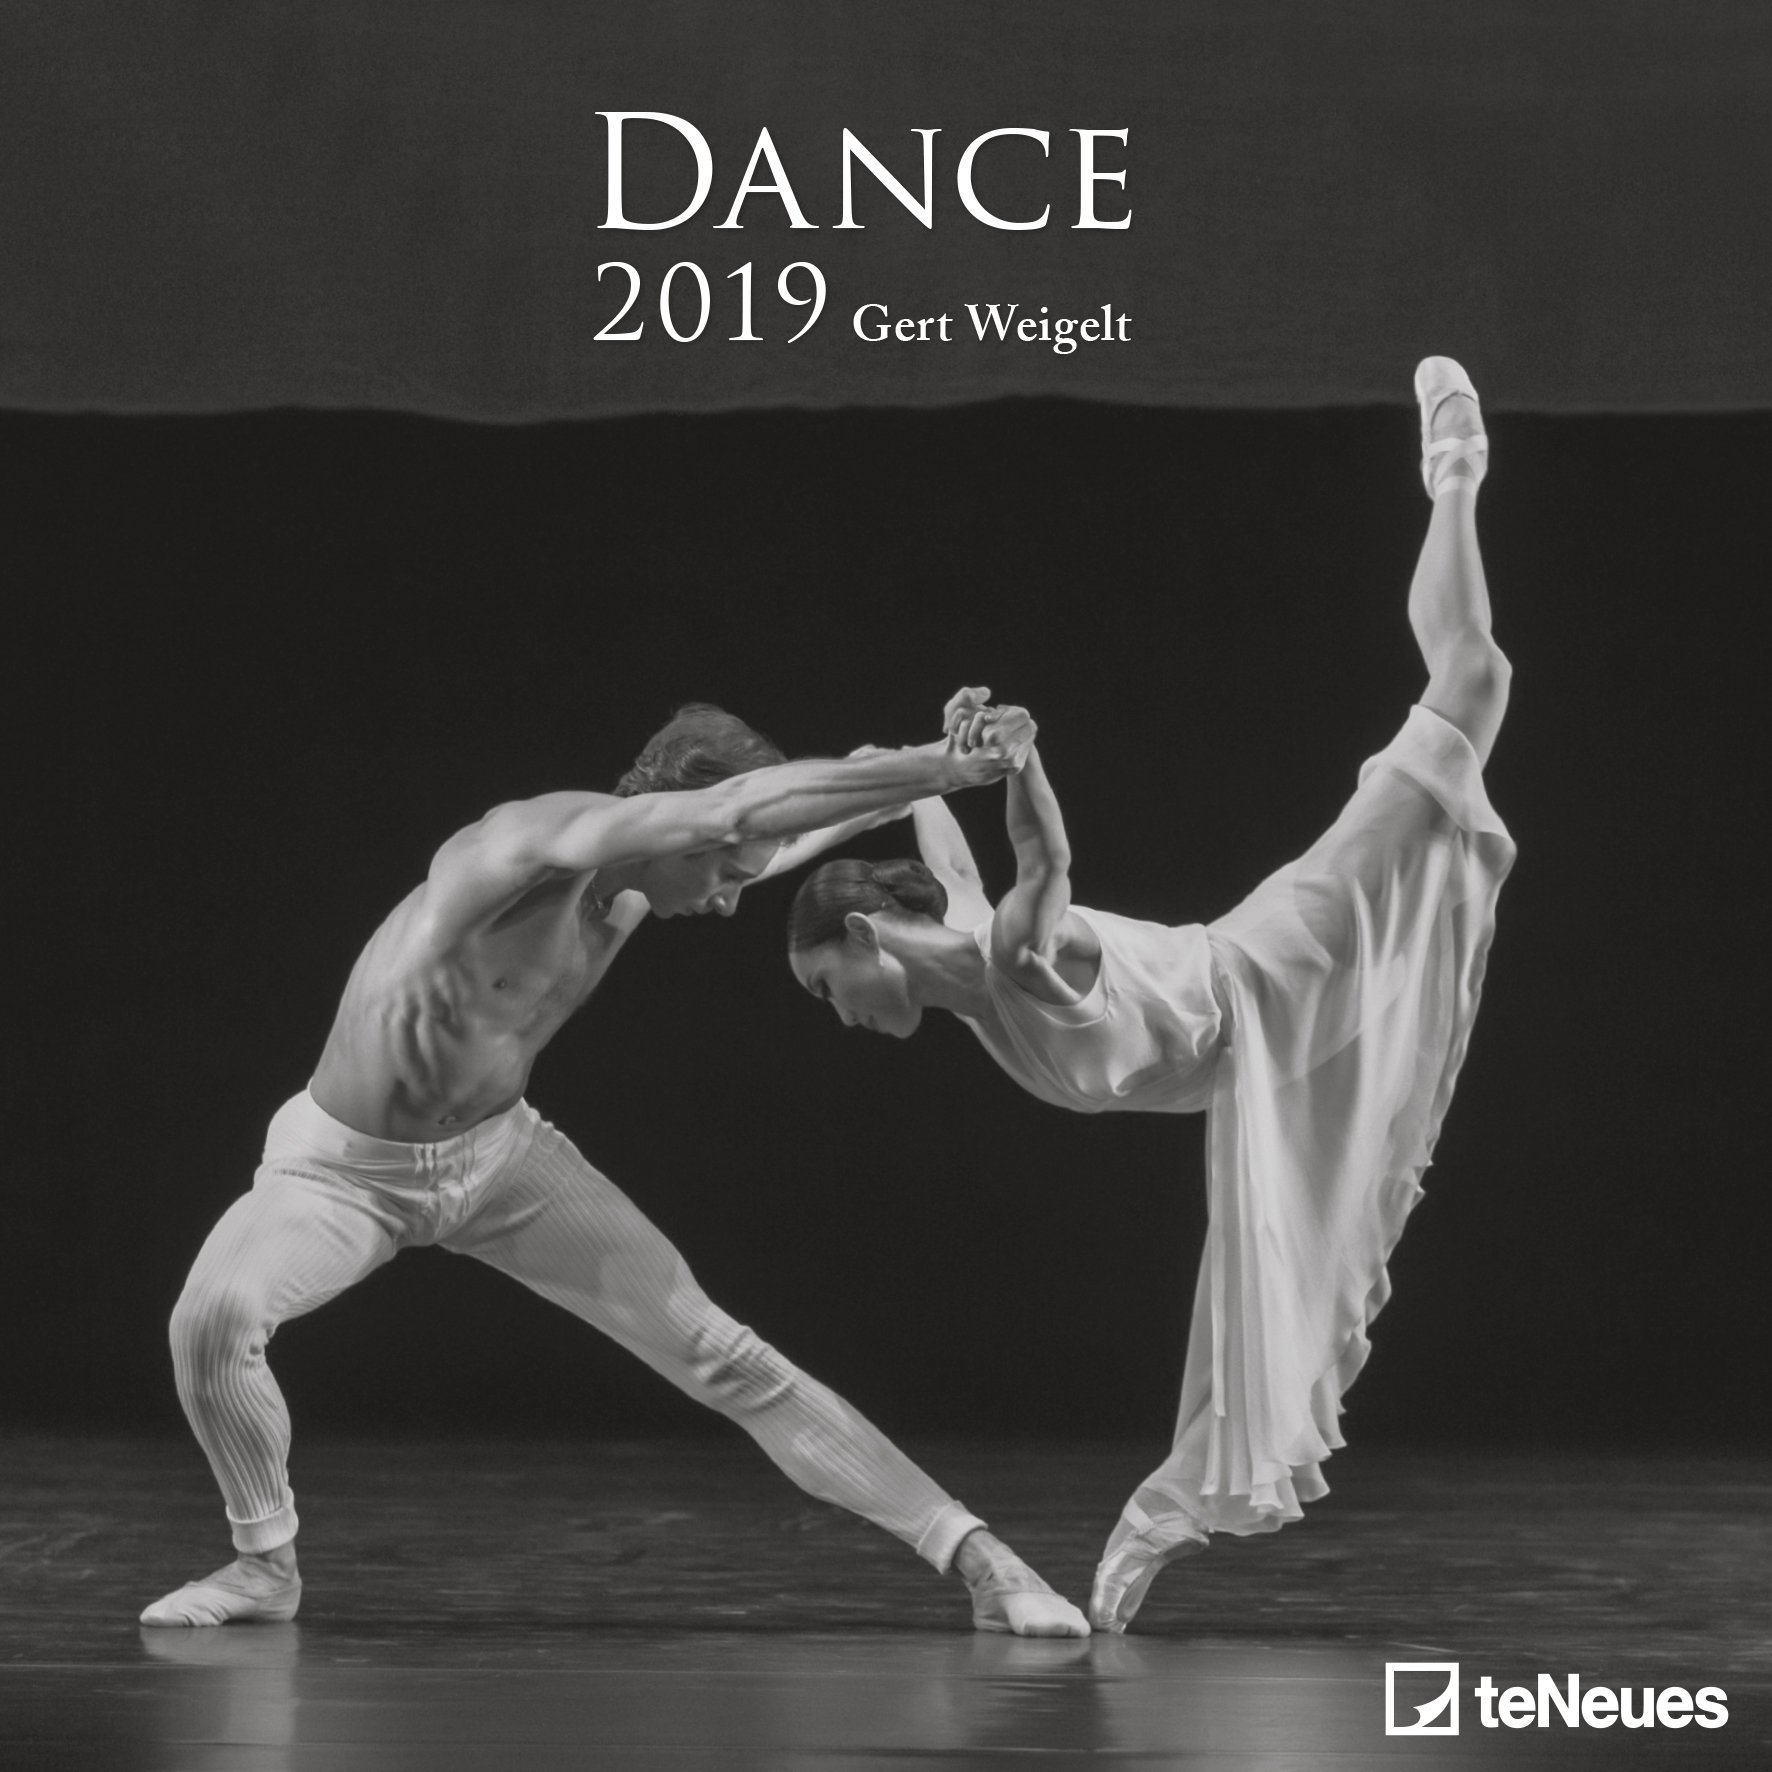 2019 dance calendar photography calendar 30 x 30 cm amazon co